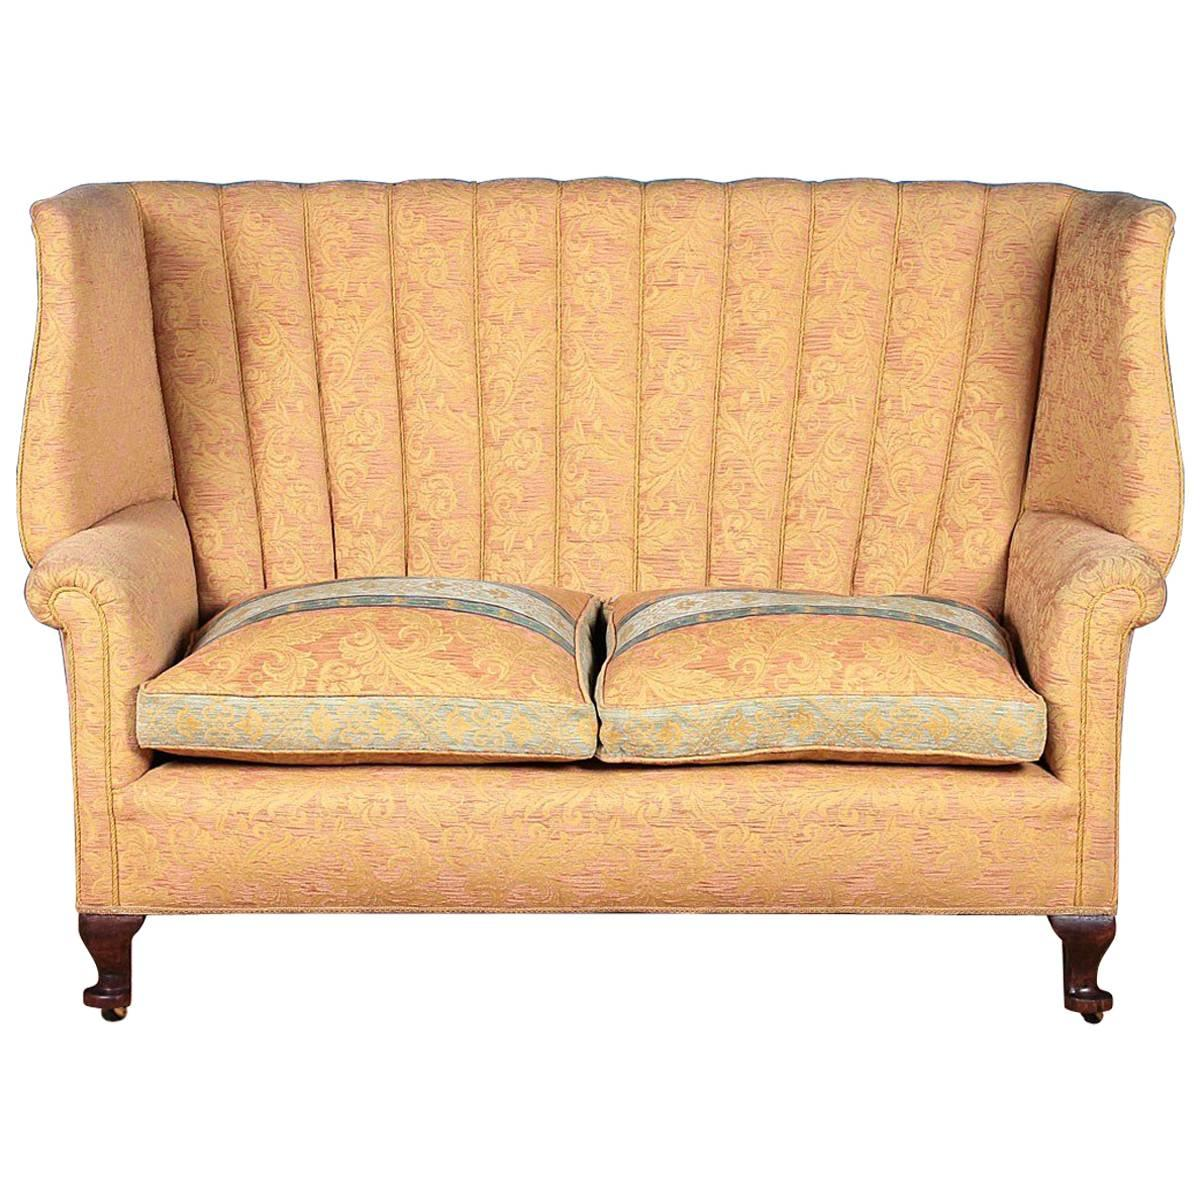 queen anne style wingback settee circa 1920 at 1stdibs rh 1stdibs com